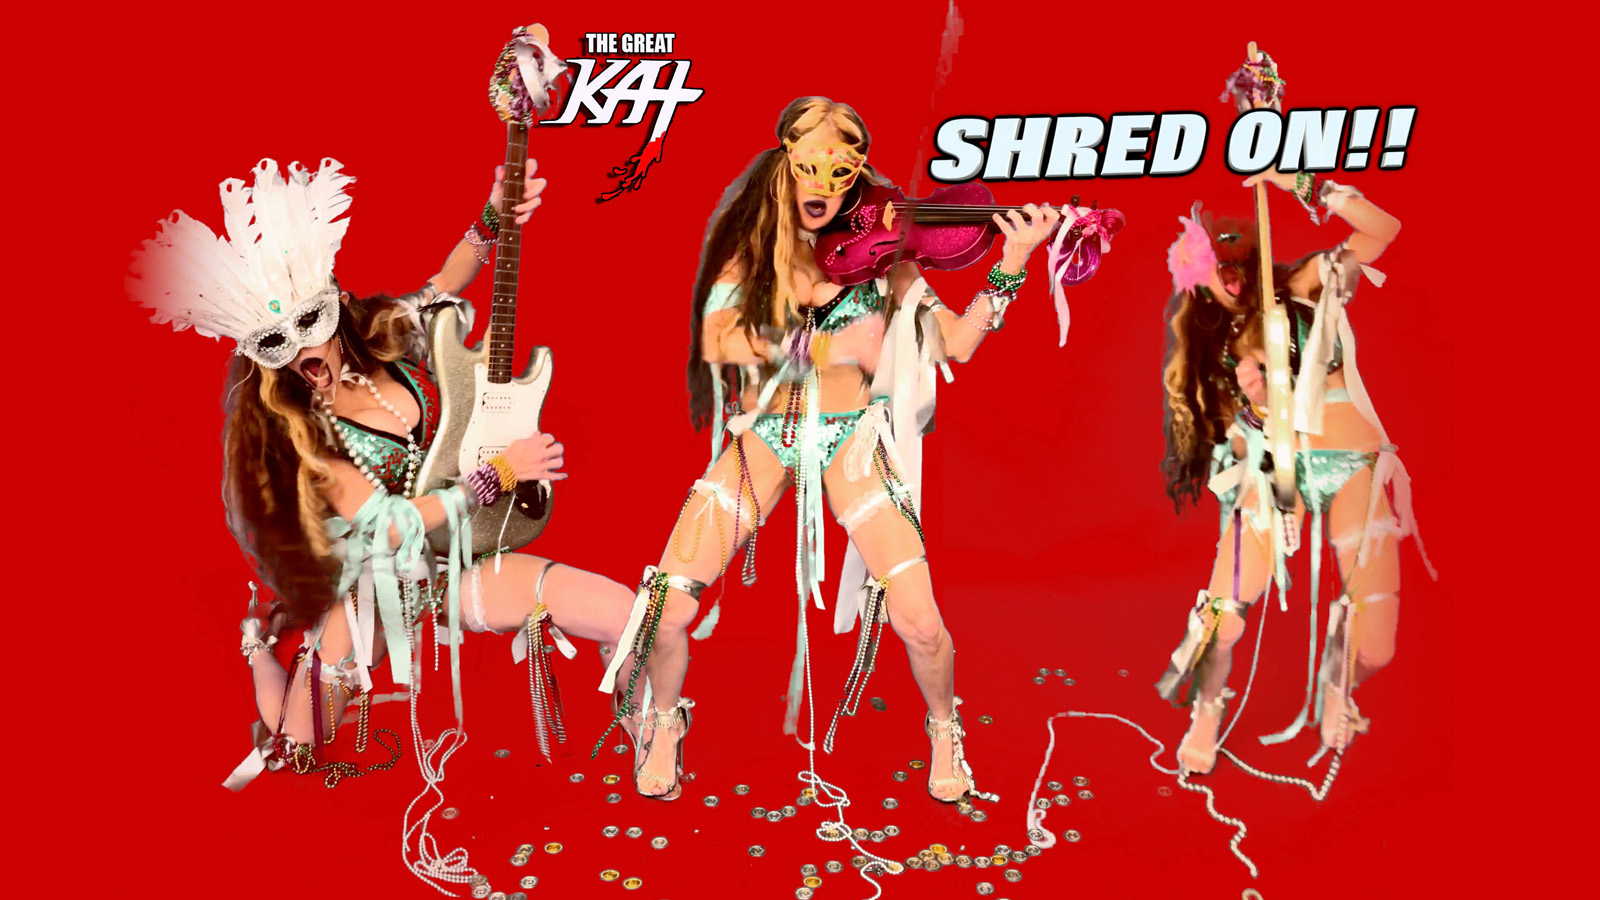 THE GREAT KAT! SHRED ON!